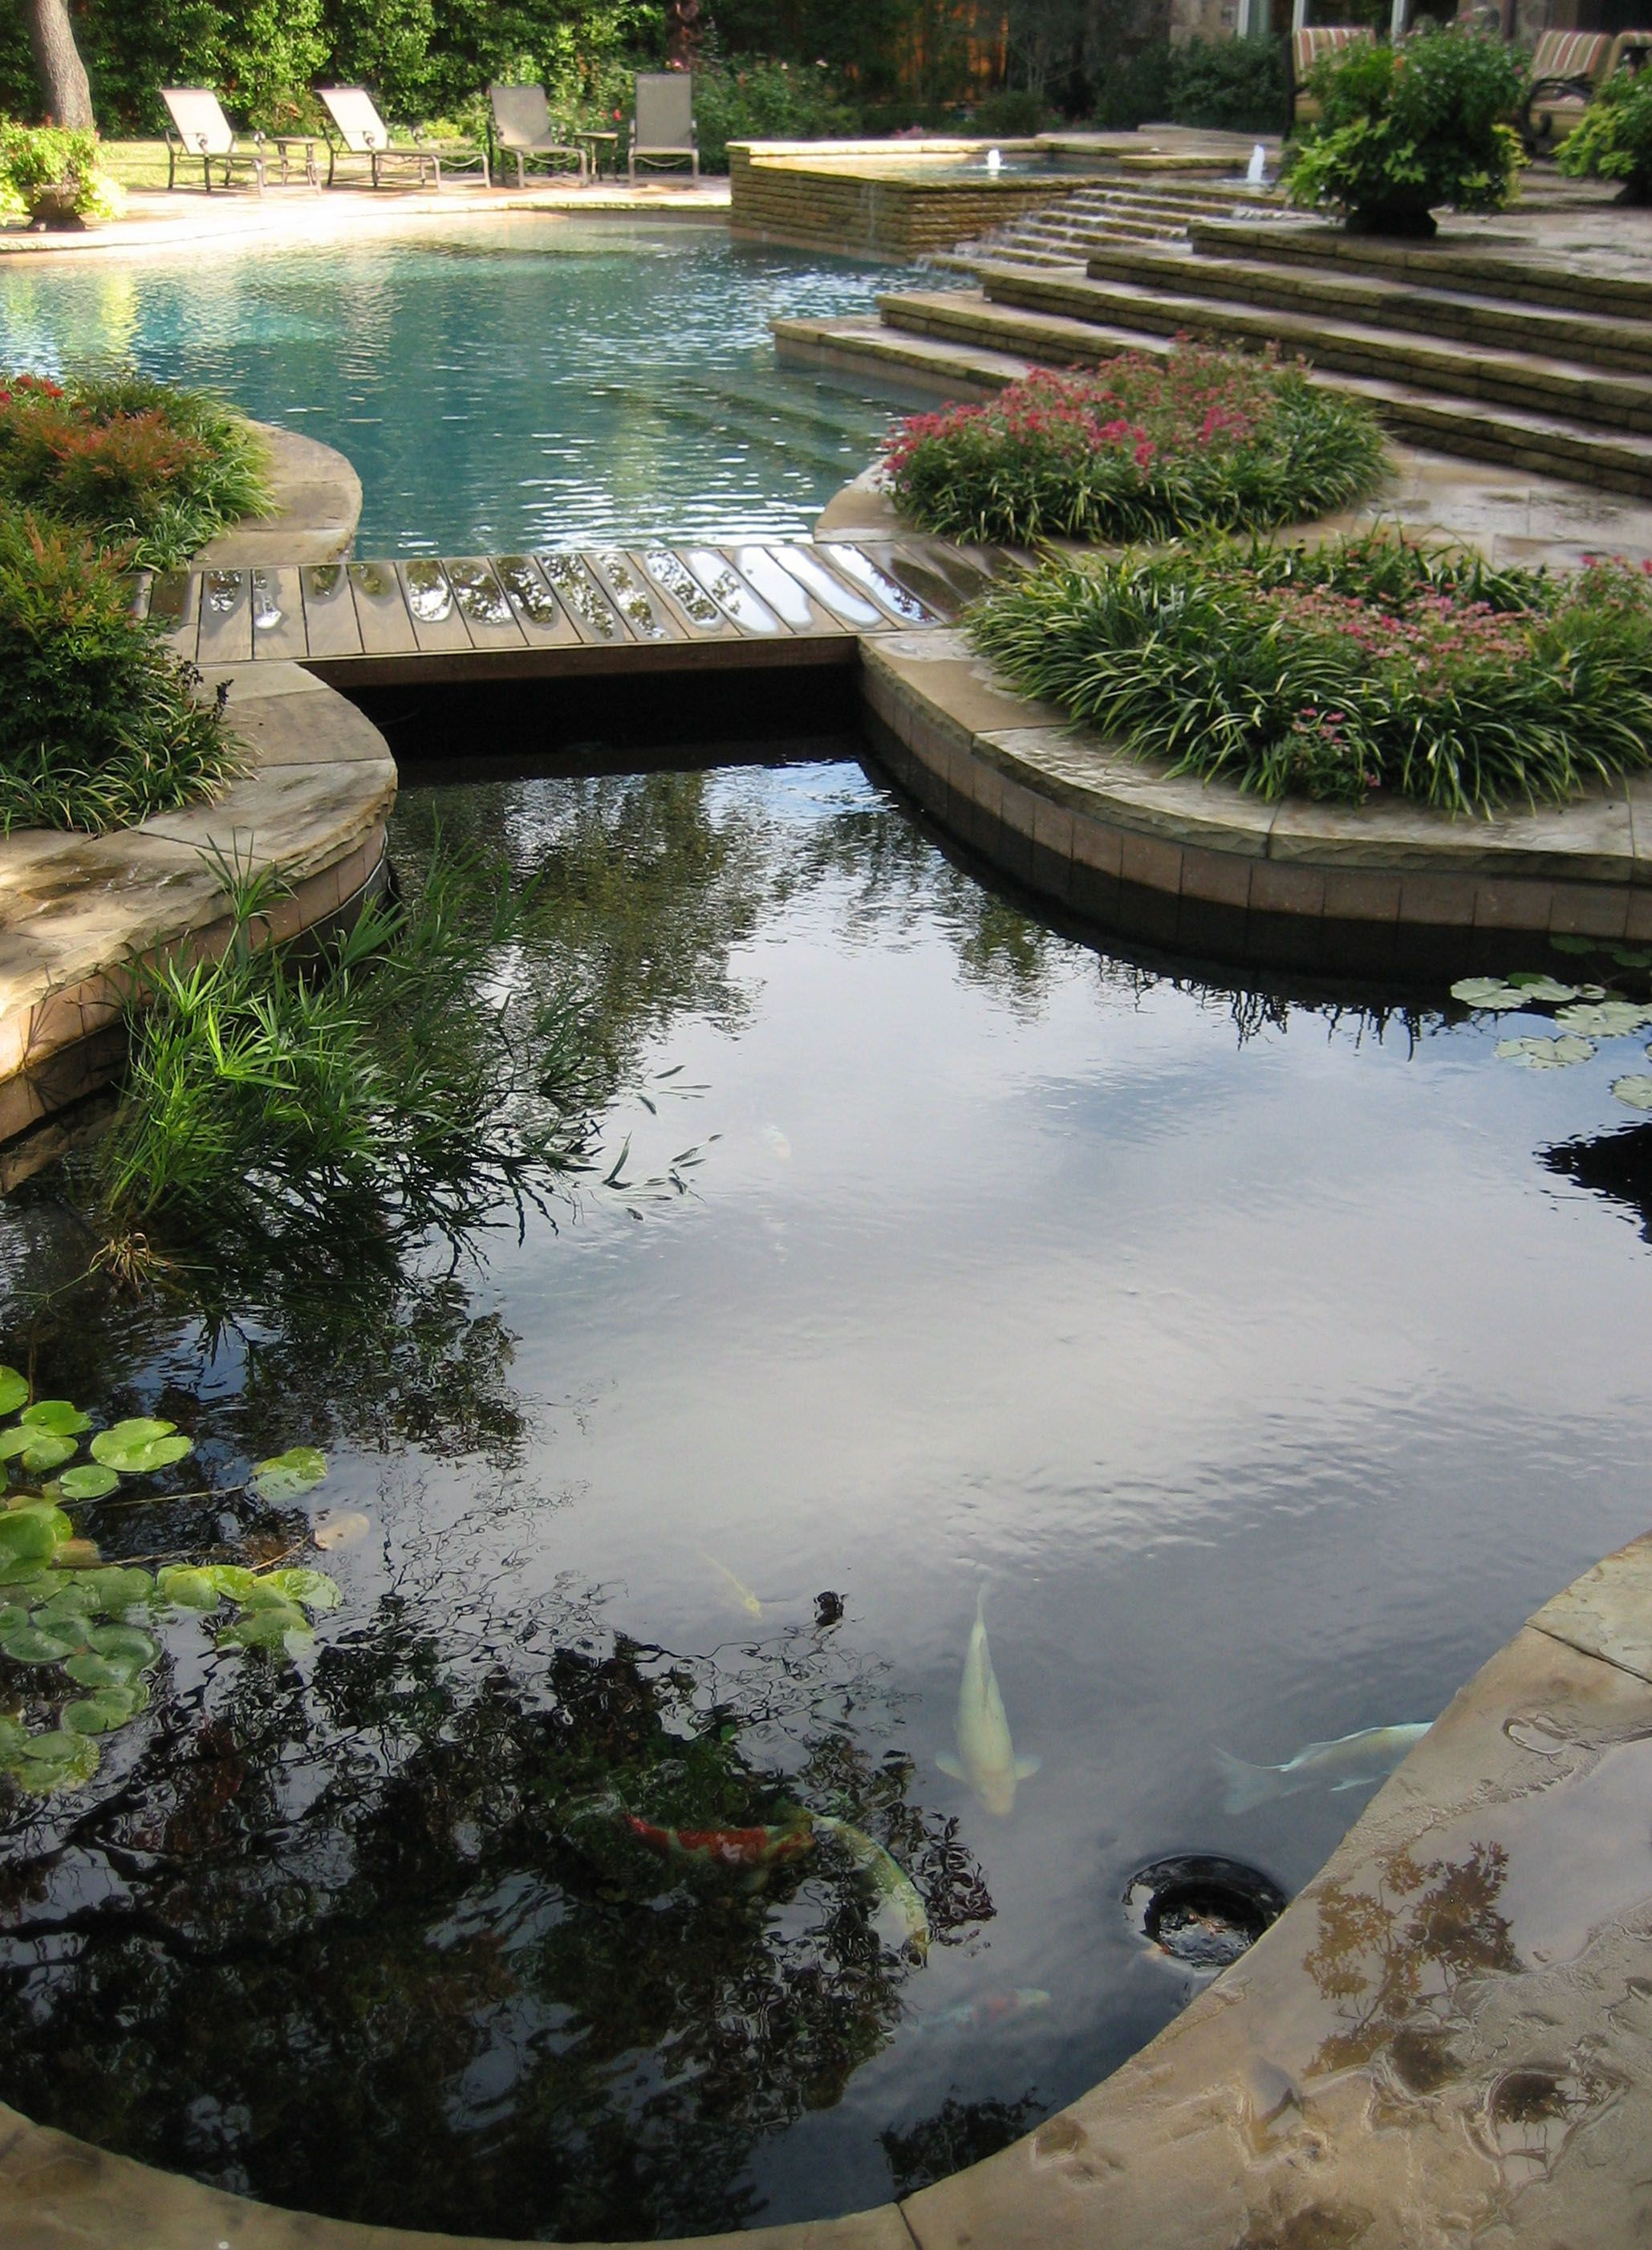 Koi pond and pool design with hidden barrier underneath for Fish pond bridges